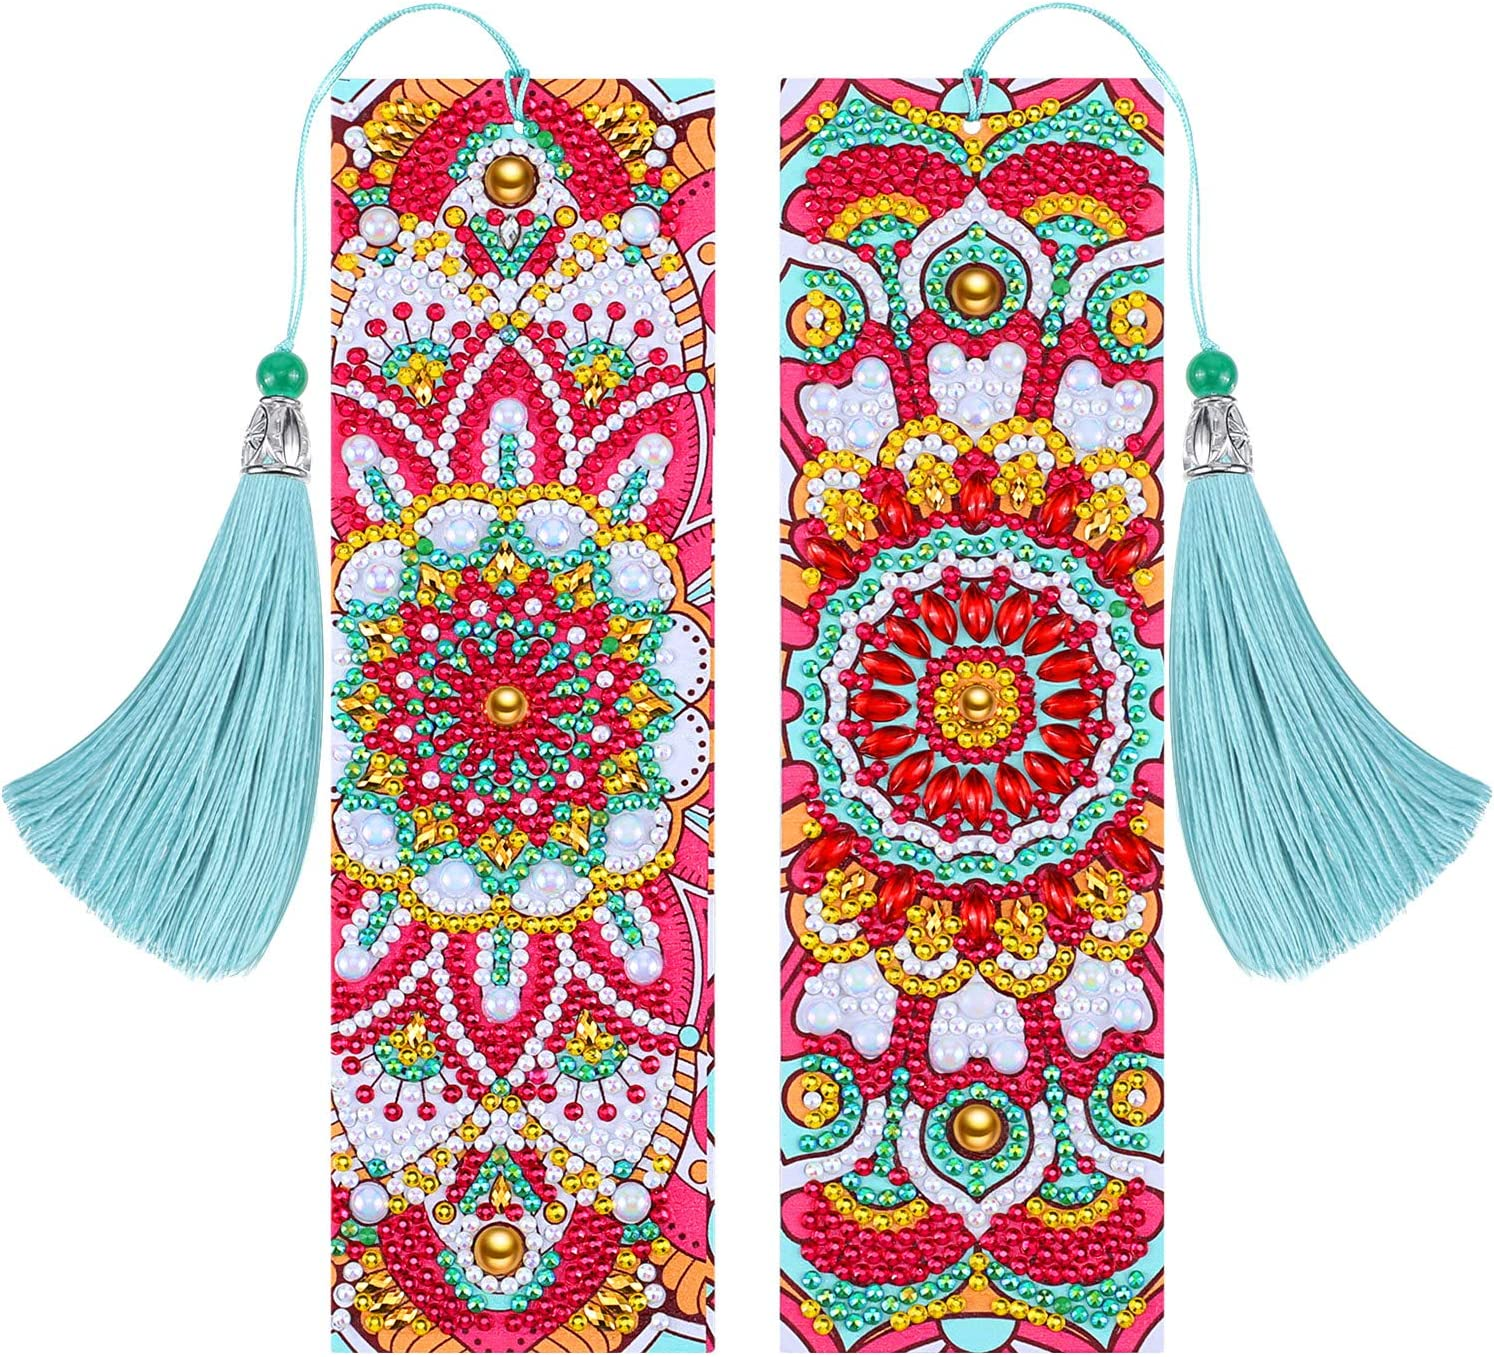 2 Pieces 5D Diamond Painting Bookmarks DIY Beaded Mandala Bookmarks Beautiful Leather Tassel Bookmarks for Mothers Day Birthday Graduation School Embroidery Arts Crafts